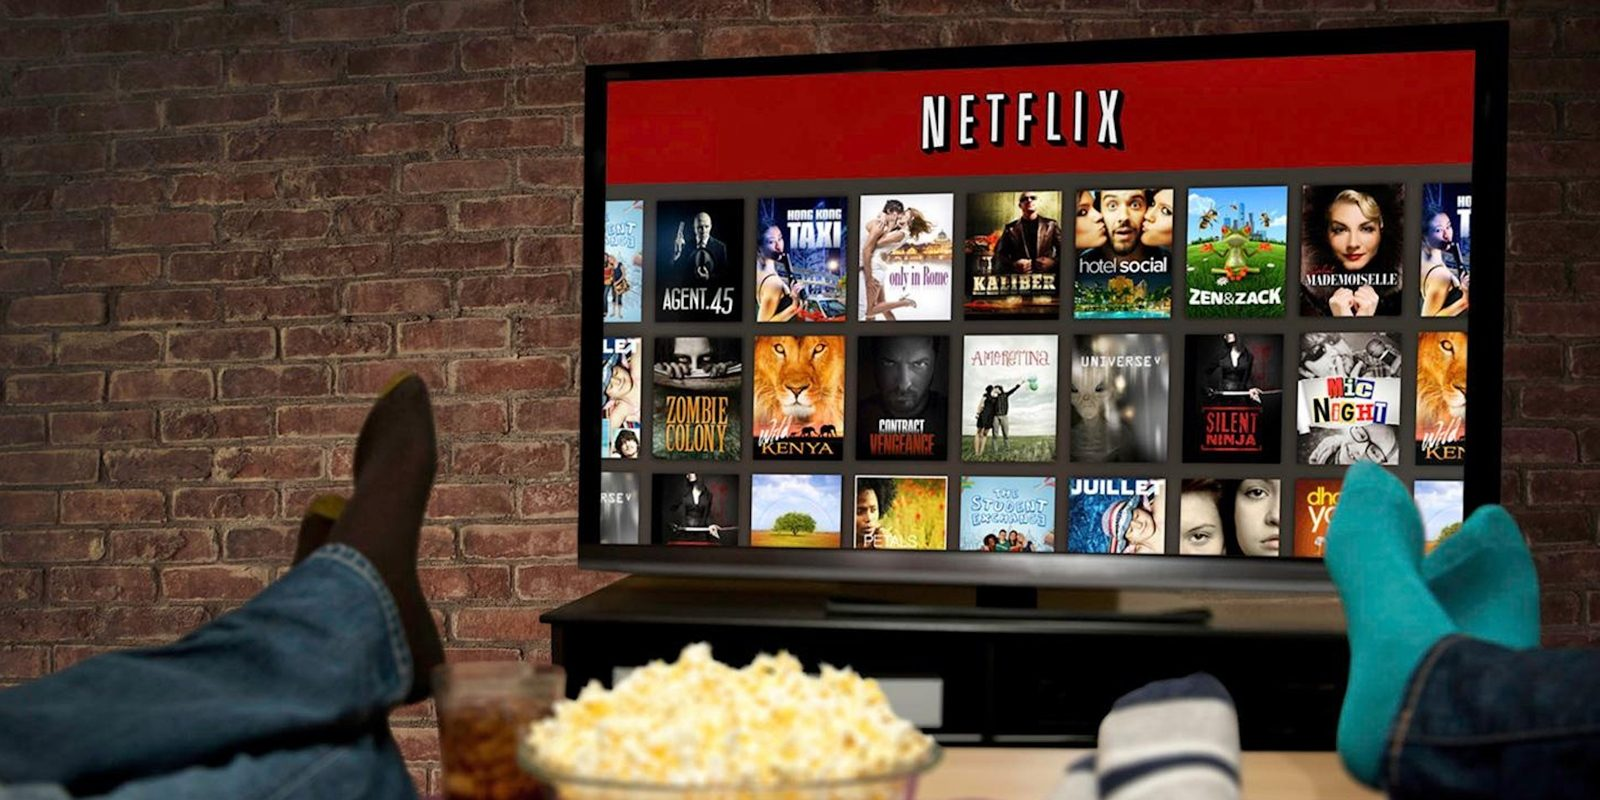 Score a $15 Amazon credit with $100 Netflix gift cards + more up to 30% off